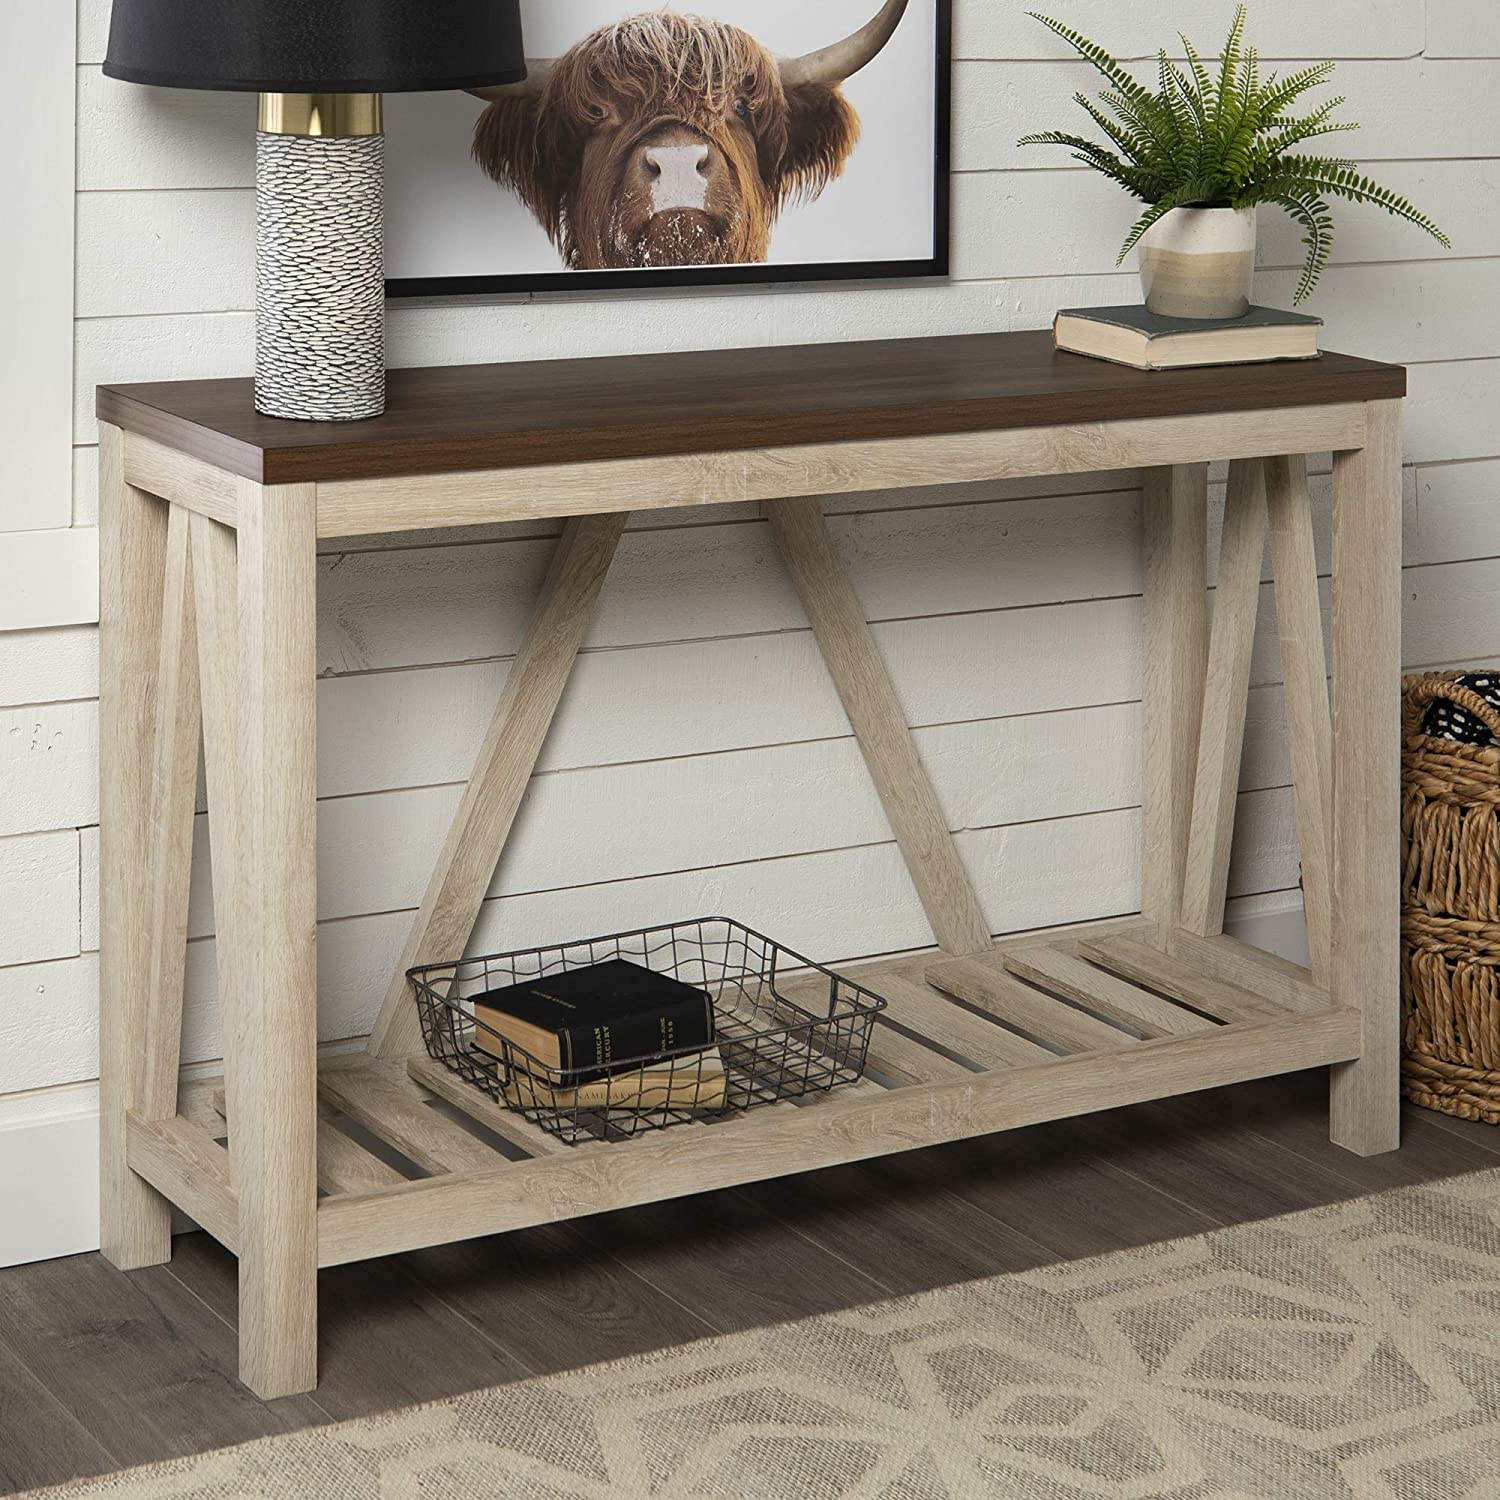 Amazon Com Walker Edison Furniture Modern Farmhouse Accent Entryway Table 52 Inch White Oak Furniture Decor